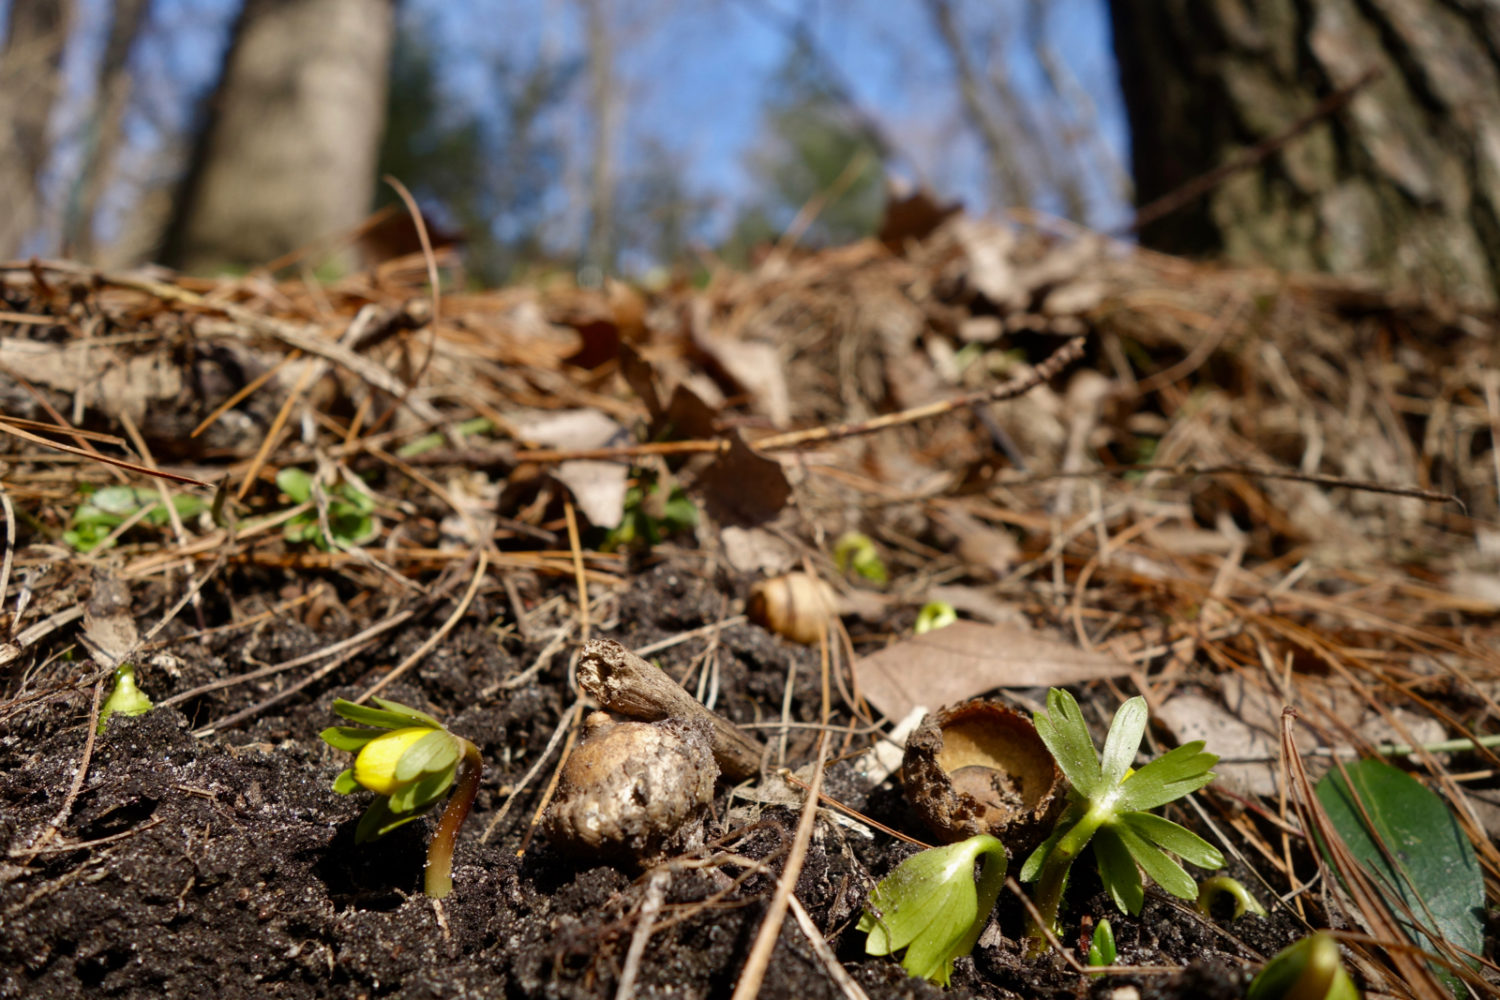 Winter Aconite just poking out of the ground on February 23, 2020